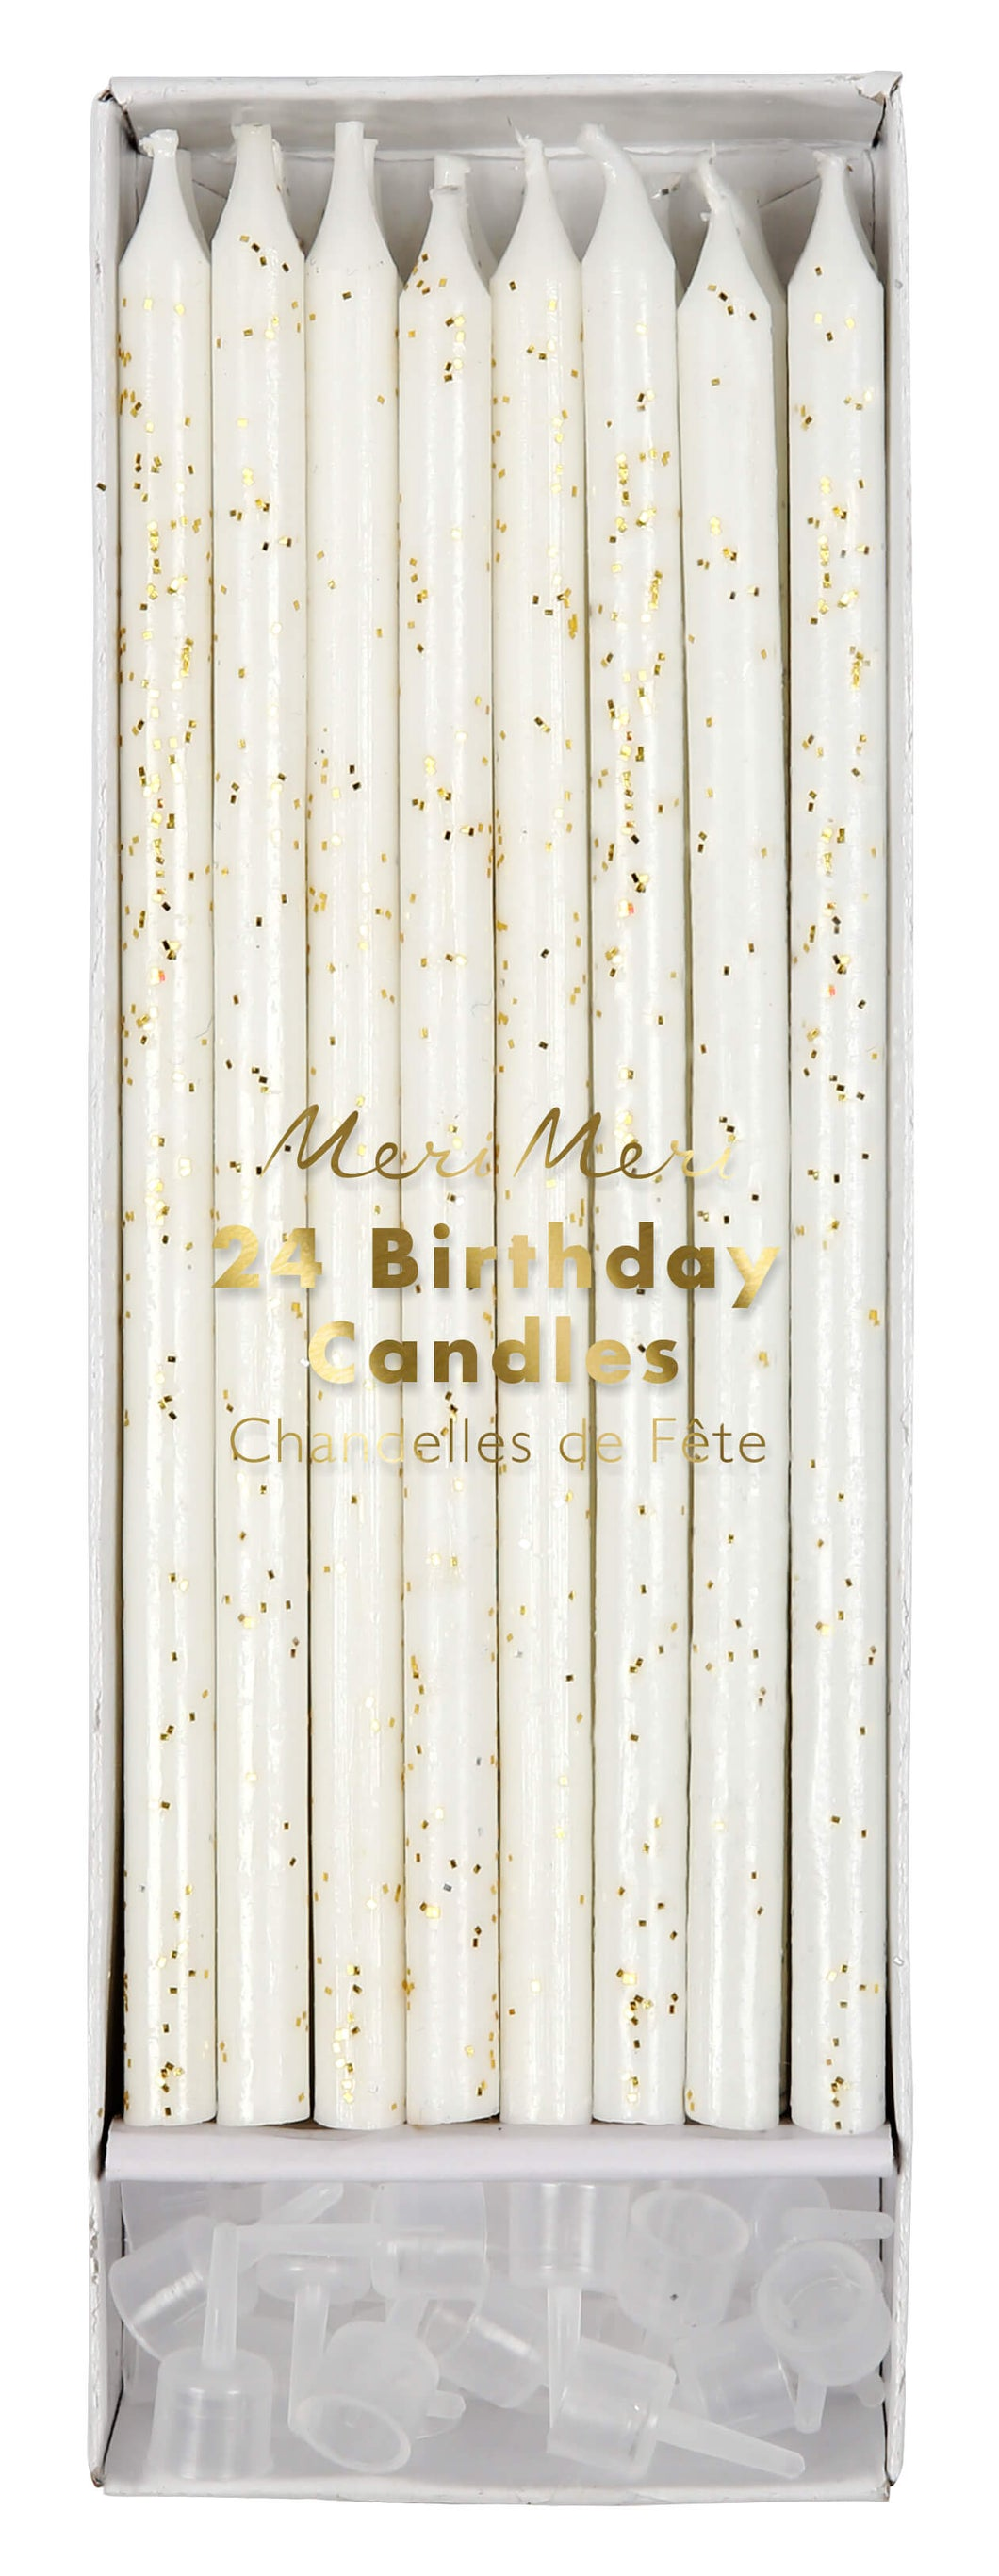 Long White Gold Glitter Cake Candles - Meri Meri